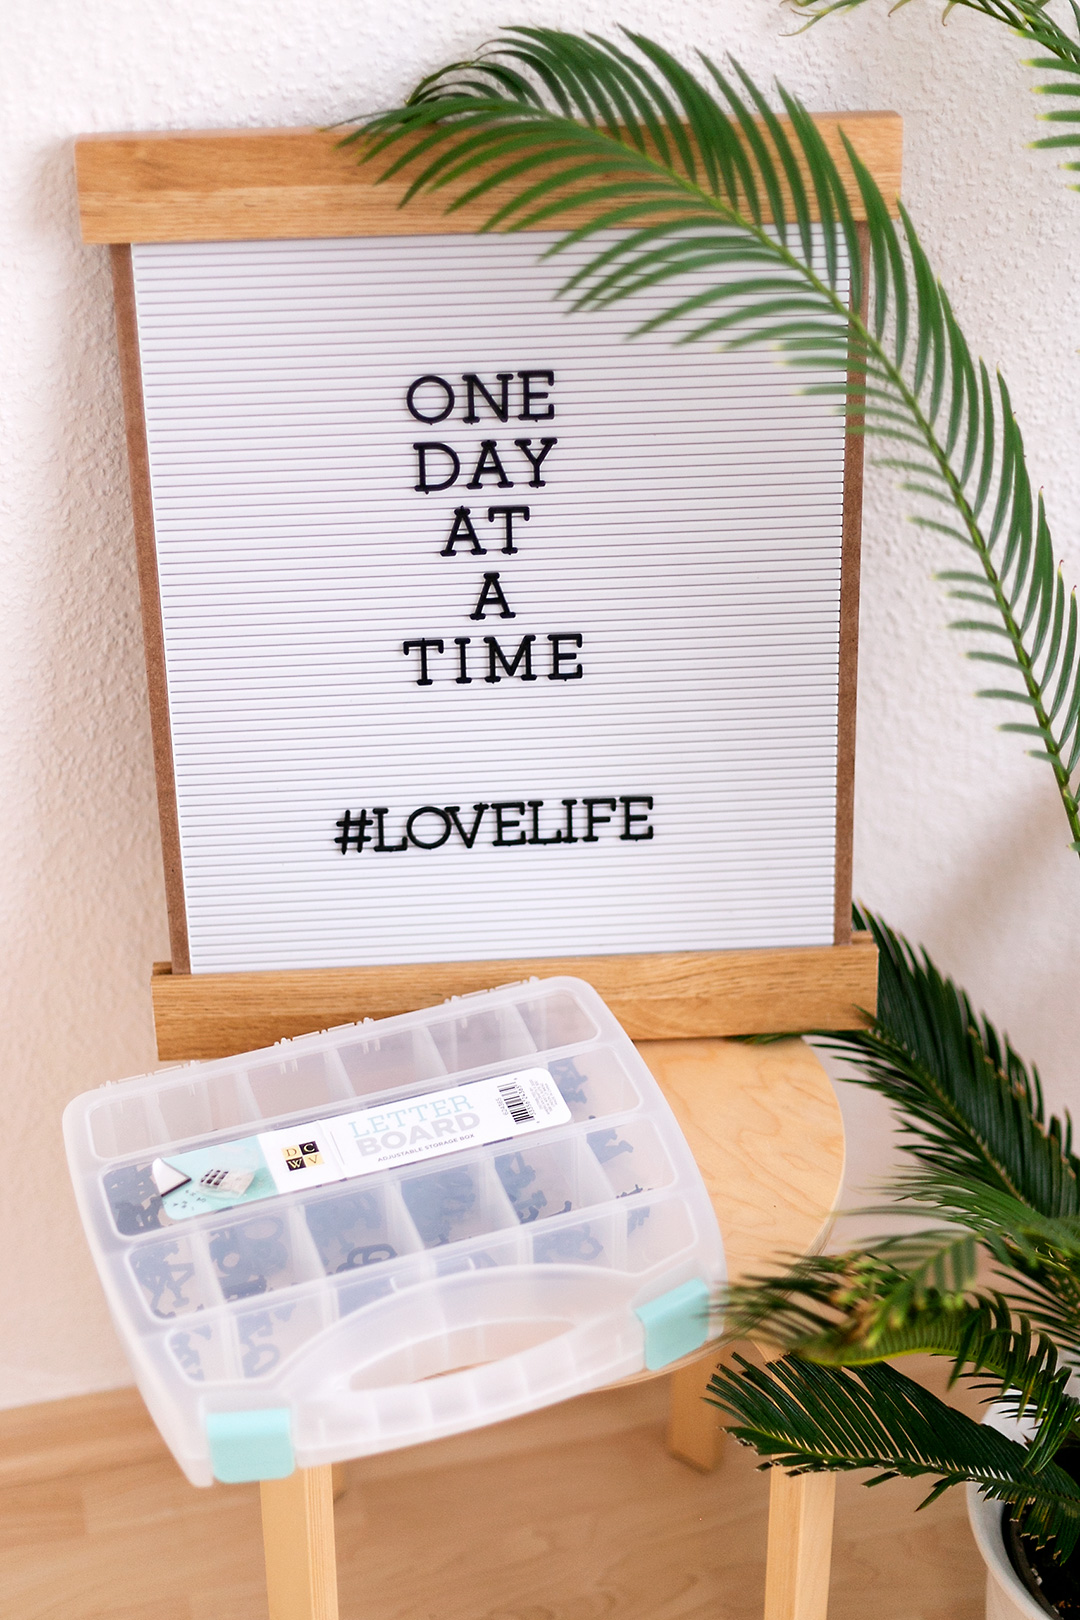 Display your quotes in your home in style with the DCWV letterboard